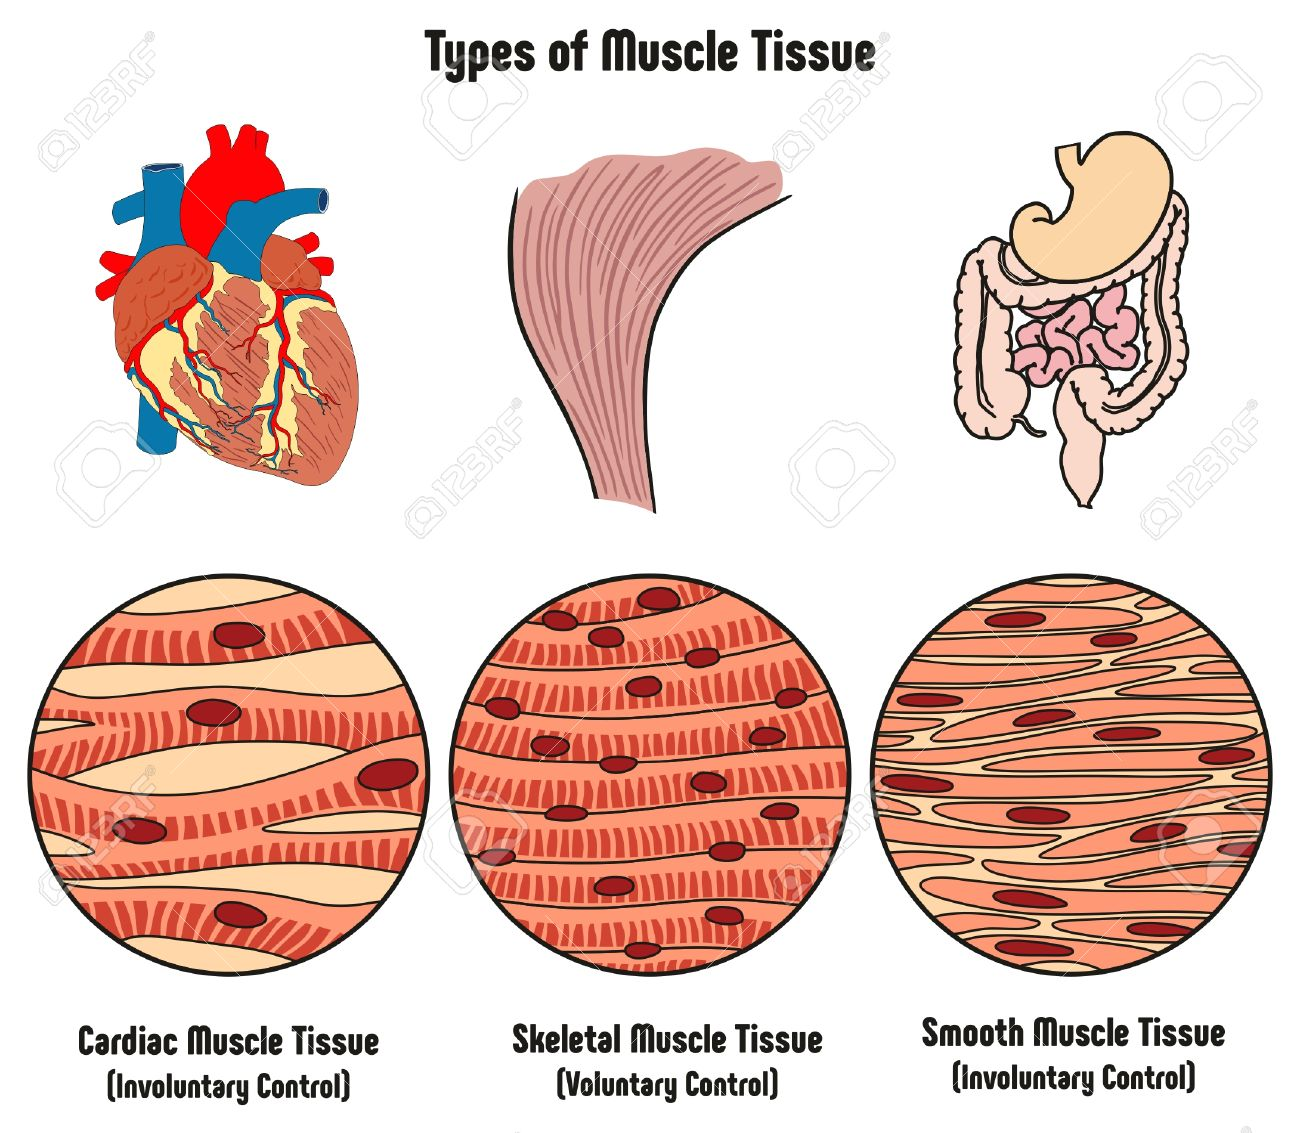 types of muscle tissue of human body diagram including cardiac